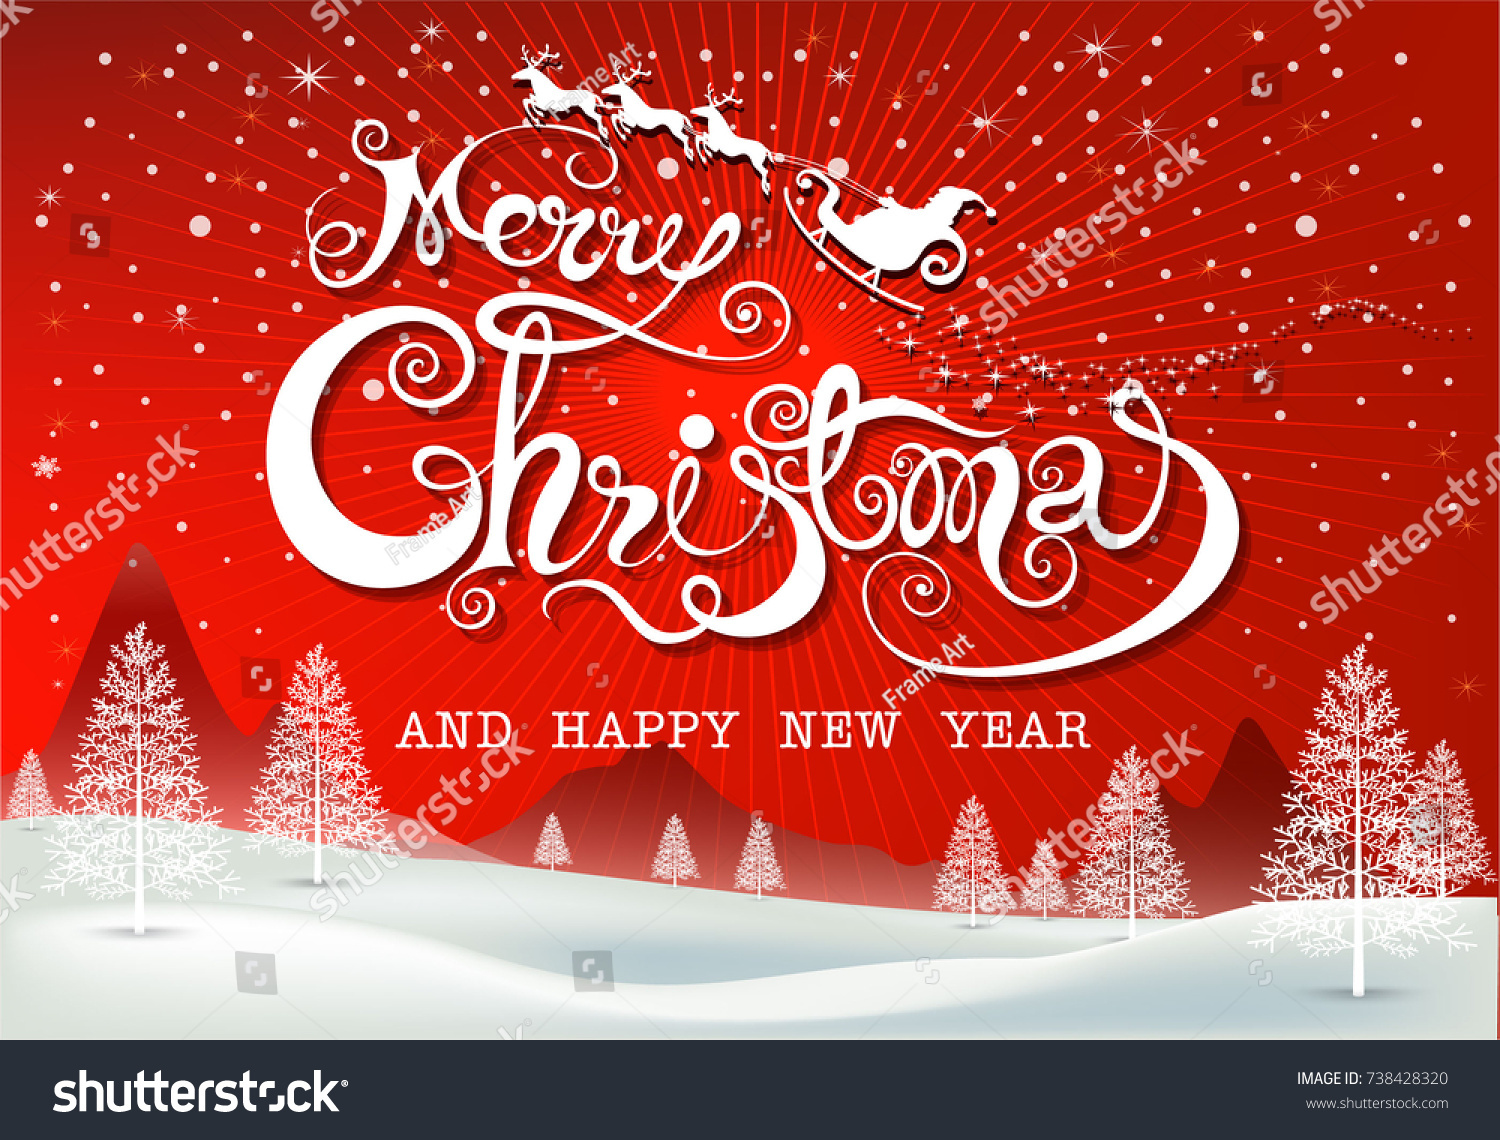 Merry Christmas Everyone Greeting Card Vintage Stock Vector Royalty